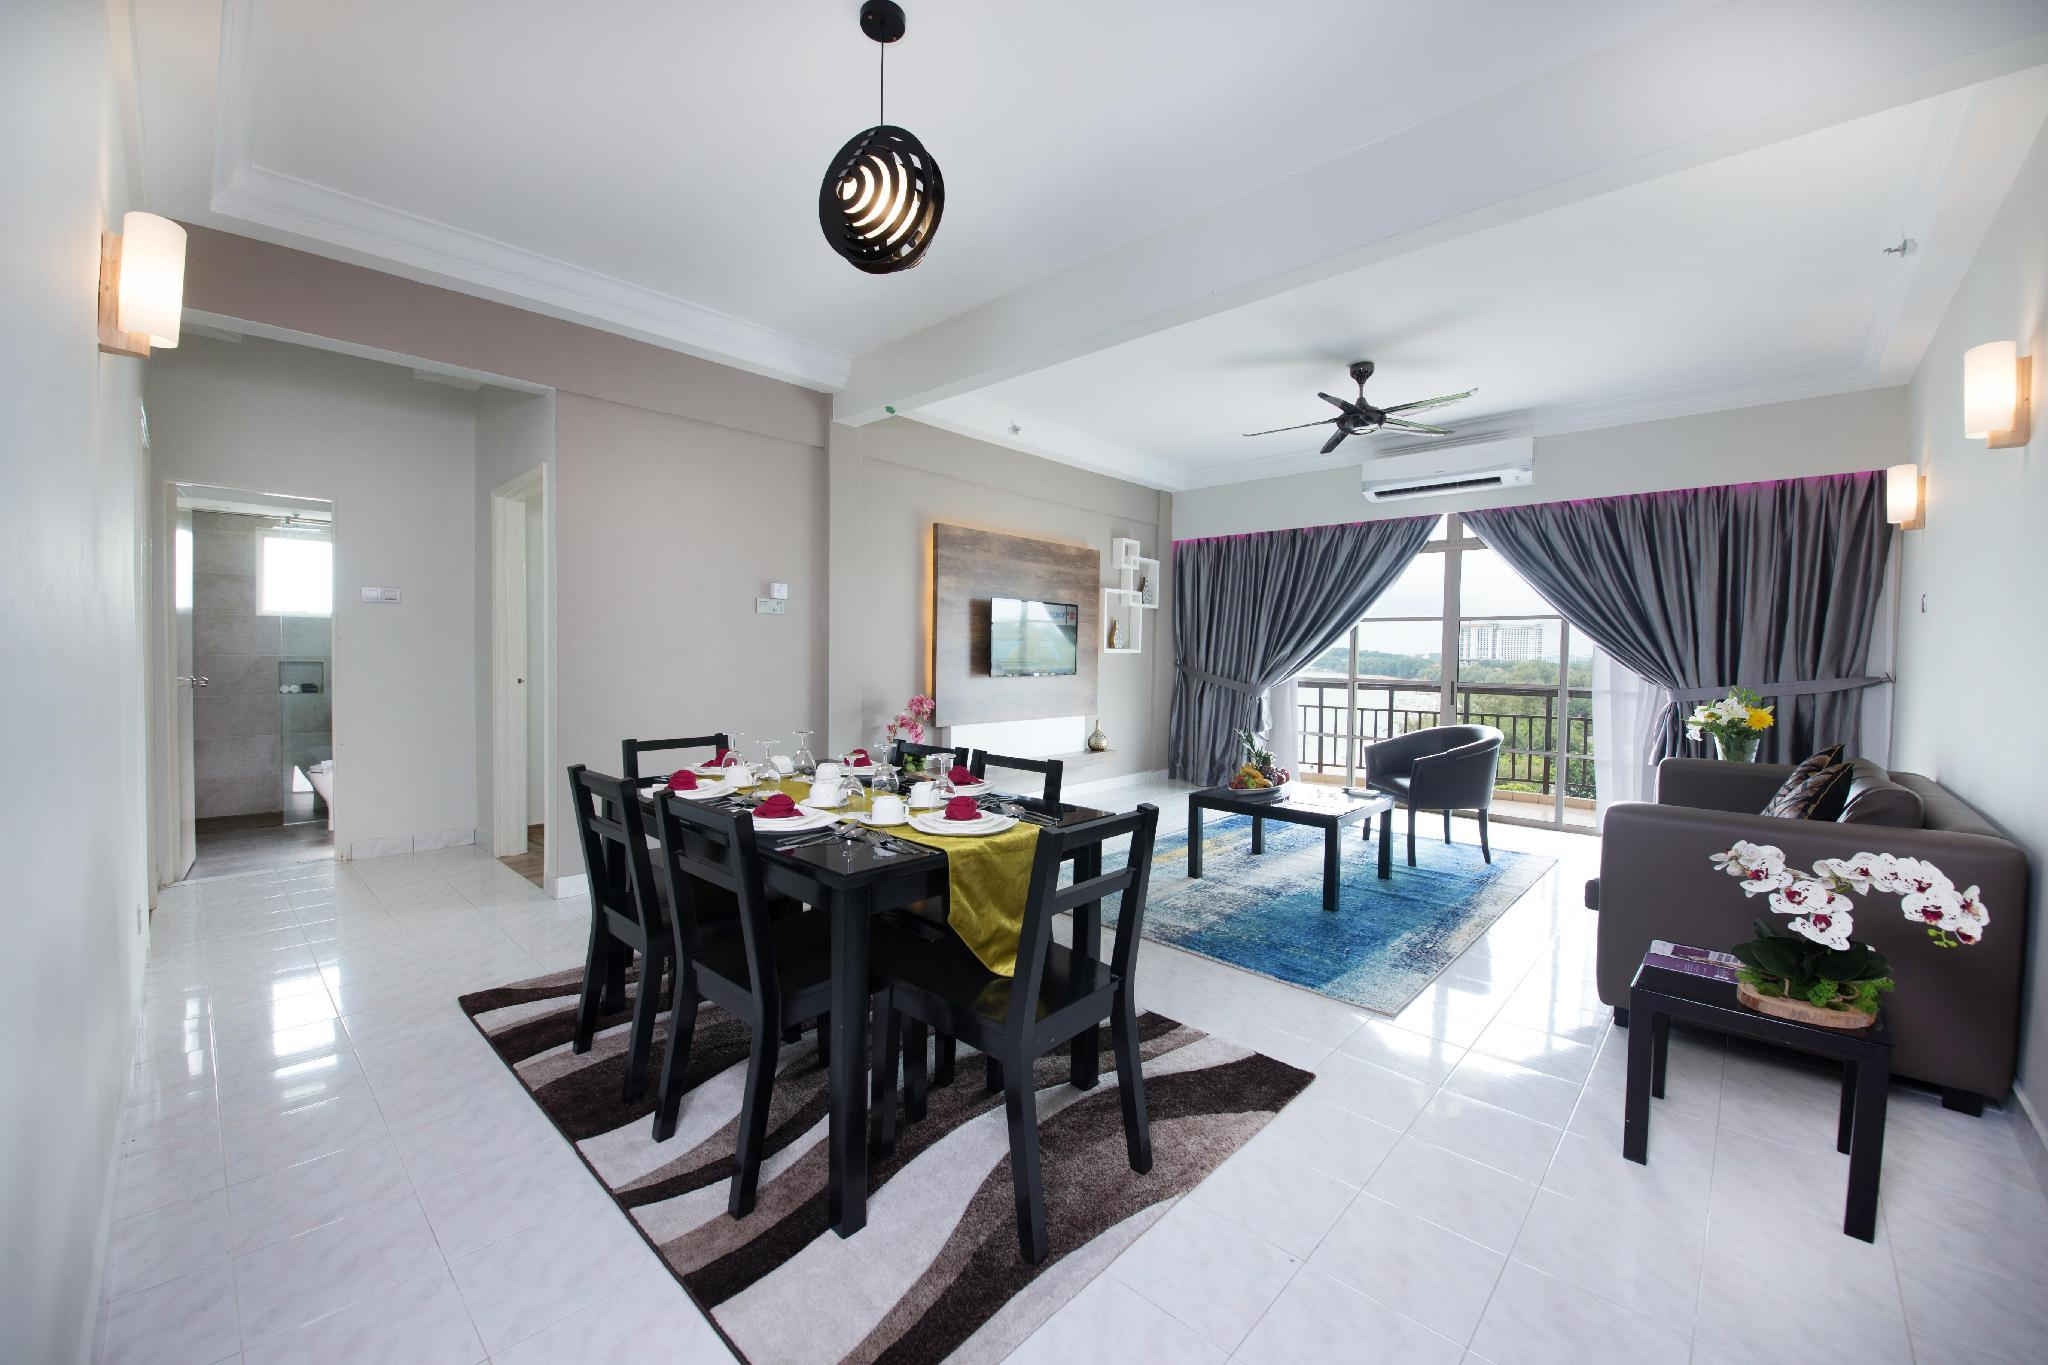 2-Bedroom Premier Residence - Newly Renovated